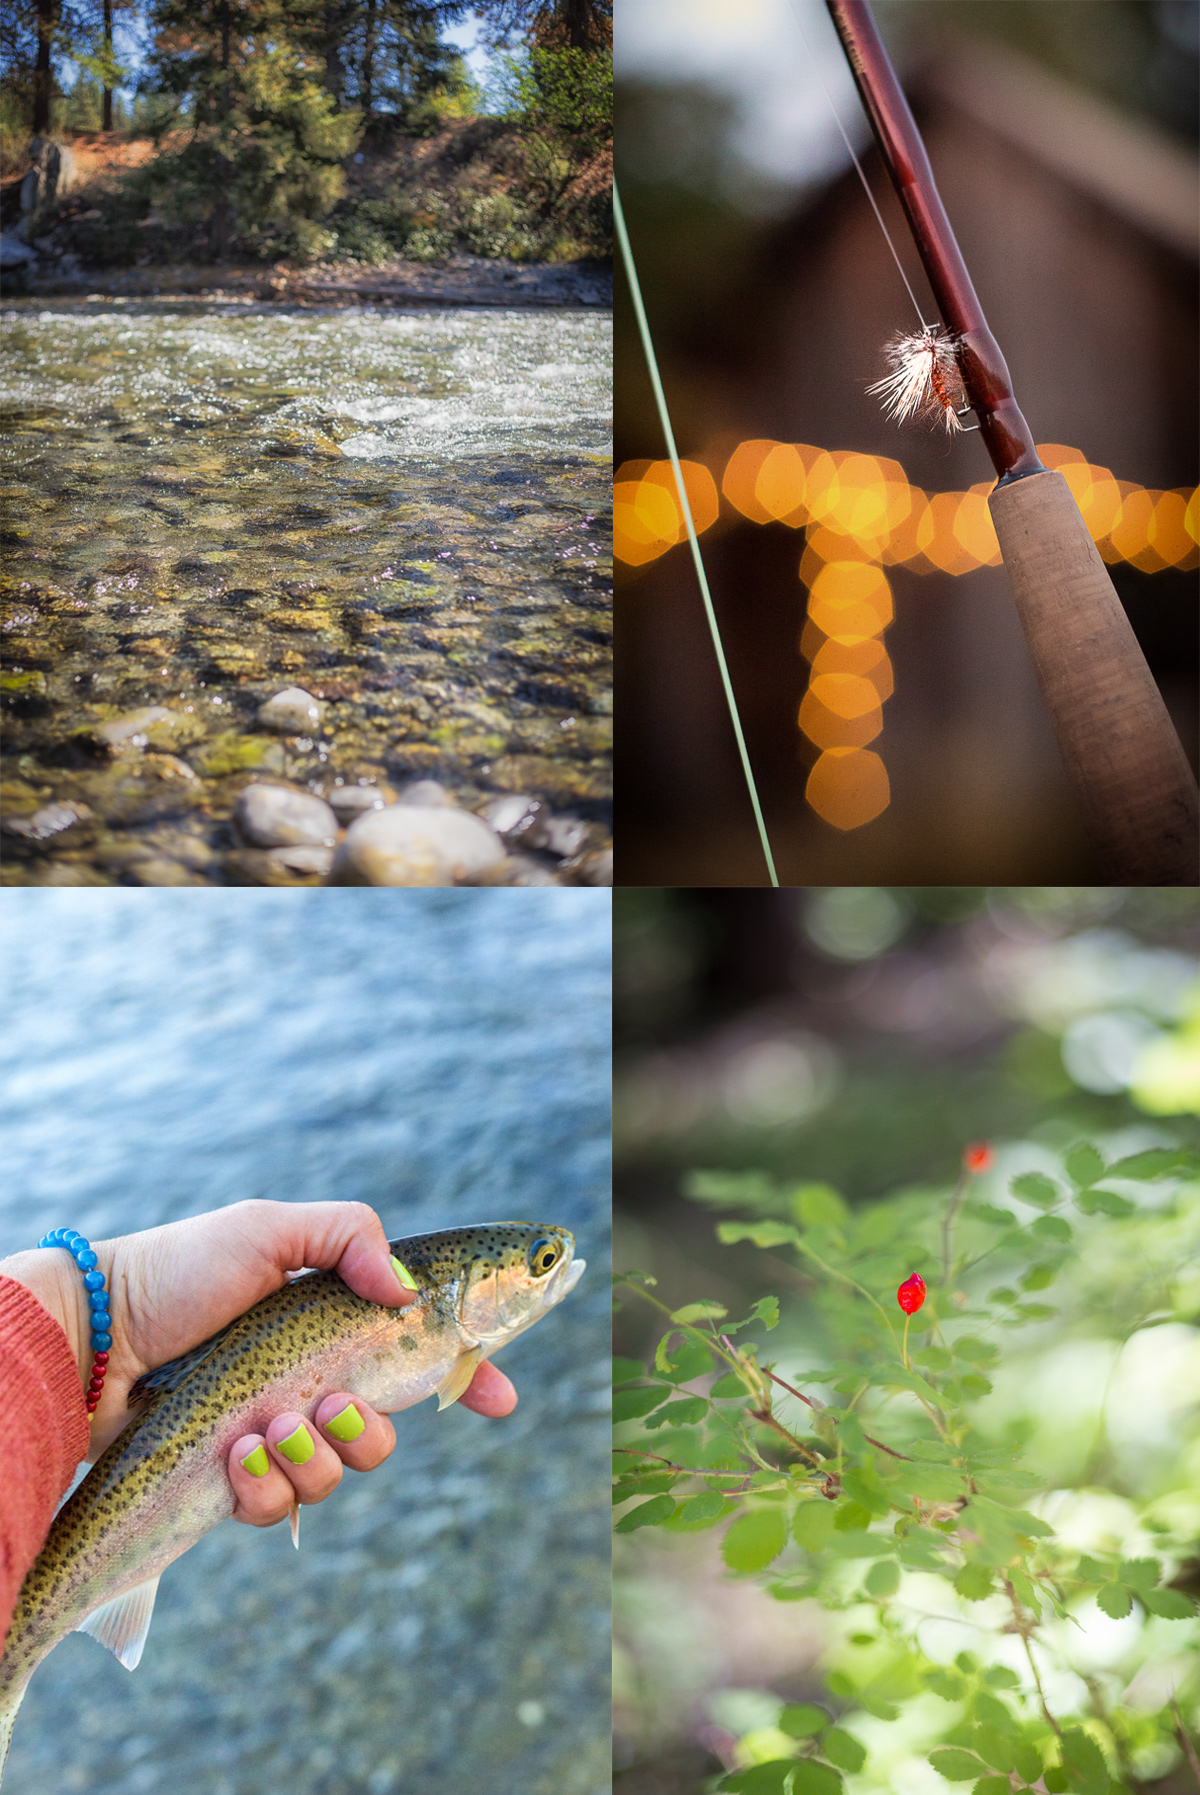 Fly fishing the Cle Elum River in Washington State via J5MM.com